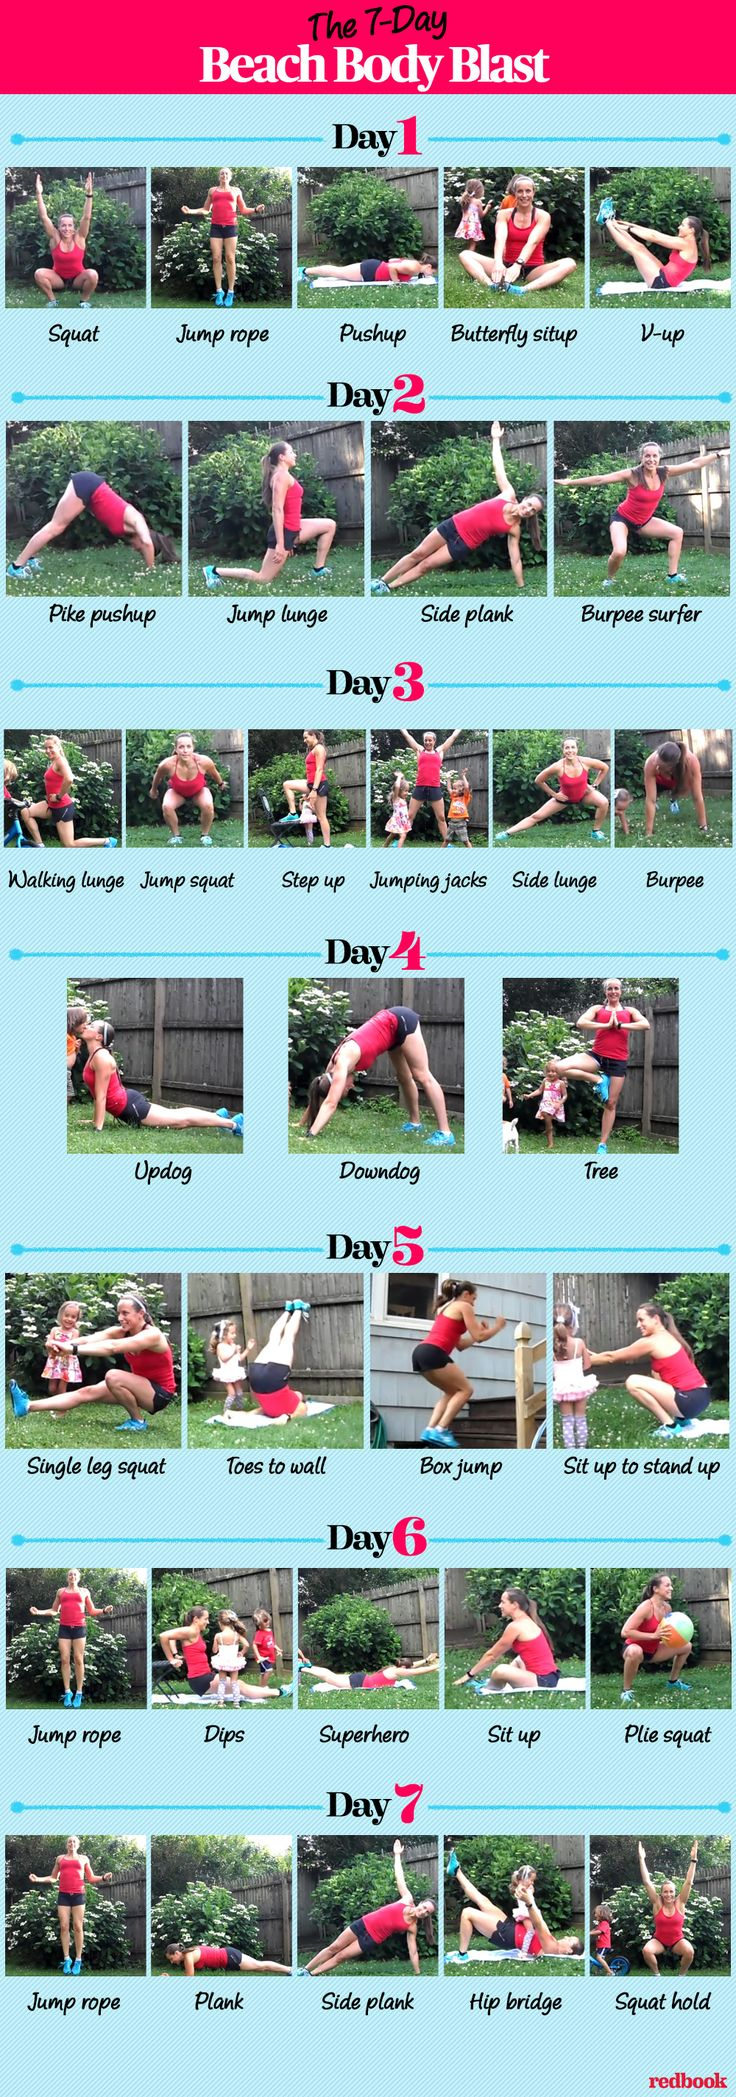 7-DAY BEACH BODY BLAST WORKOUT: Use this beach body challenge to get the strong and fit body you've always wanted! This fun workout routine actually works, thanks to intense, one-minute interval moves including: squats, jump rope, push-ups, jump rope, butterfly sit-ups, jump rope, and v-ups. Click through for the day-by-day full body workouts, easy-to-follow instructions, tutorials, and fitness tips from pros.